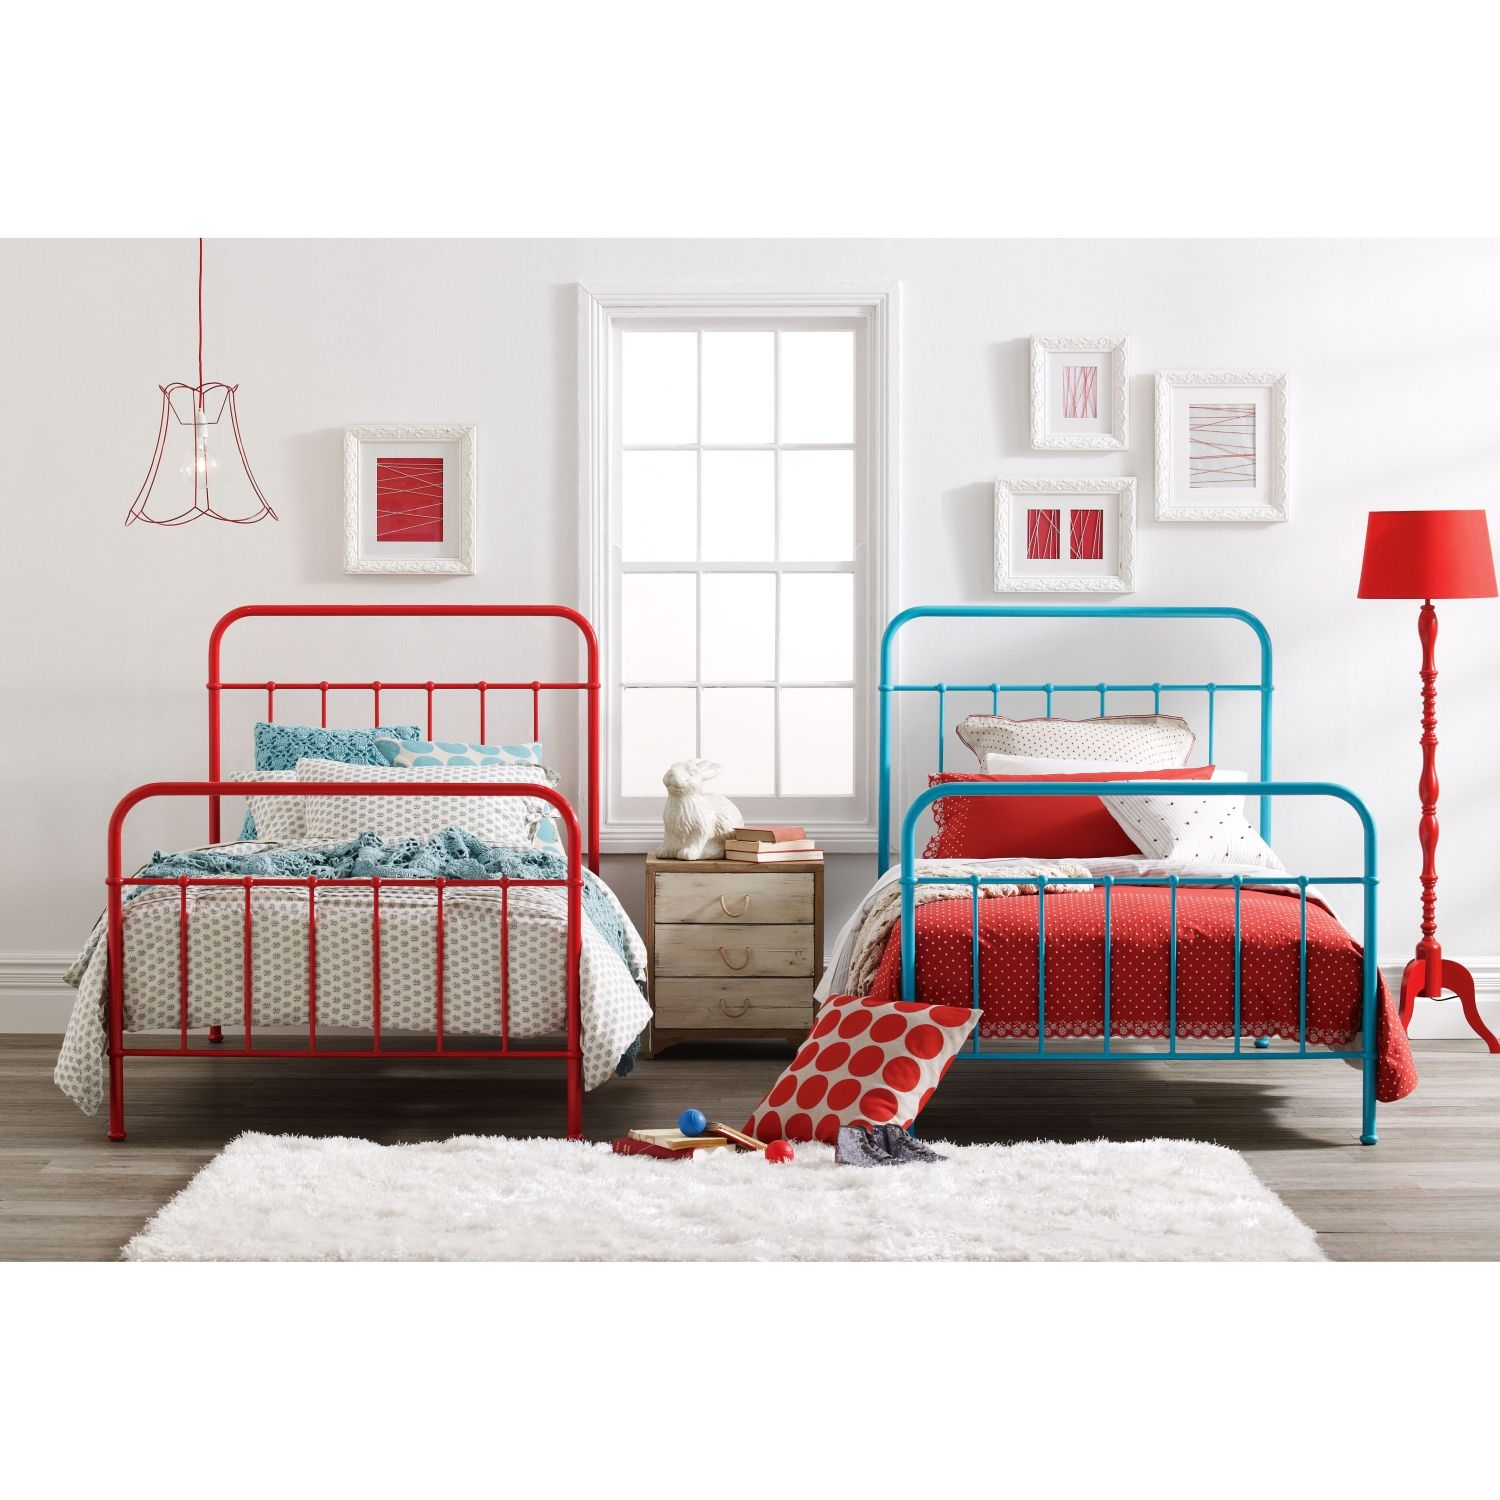 Vintage-Inspired Kids\' Rooms | Metal beds, Red beds and Bed frames